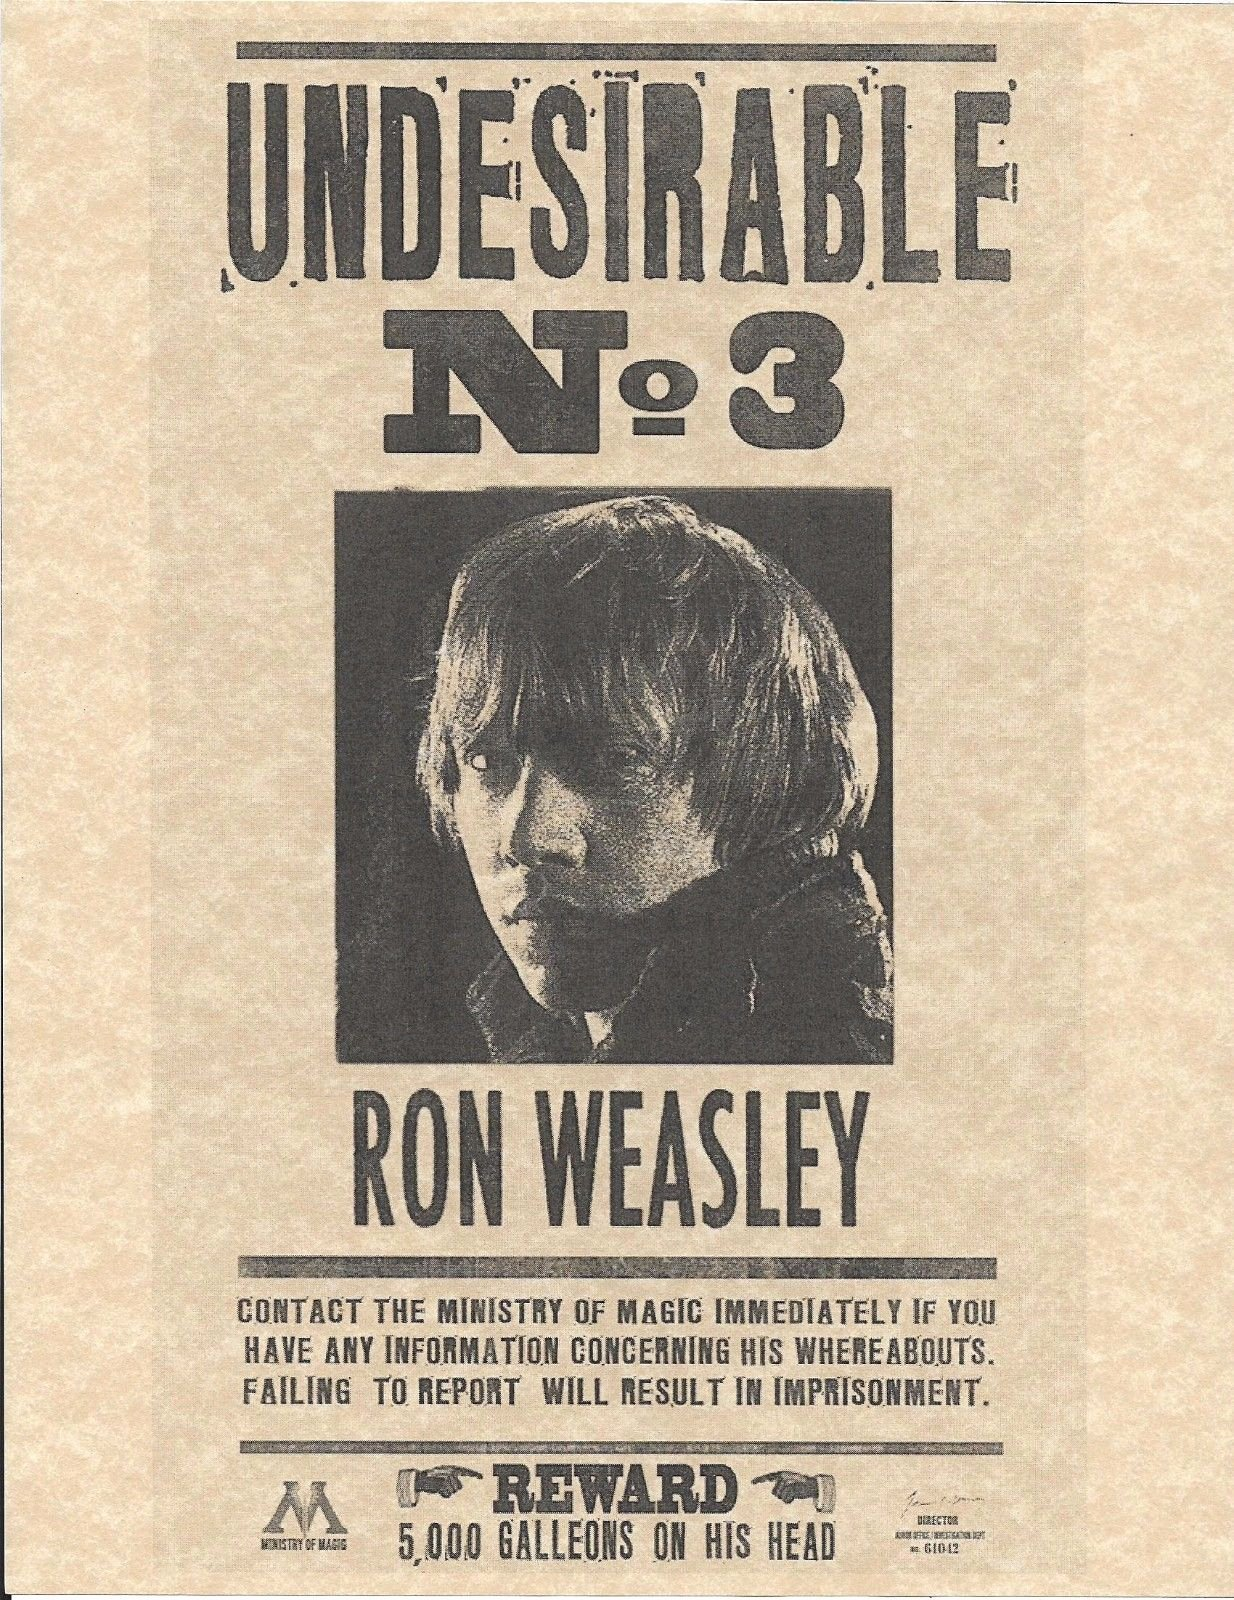 Harry Potter Wanted Poster Beautiful Harry Potter Undesirable Number 3 Ron Weasley Wanted Flyer